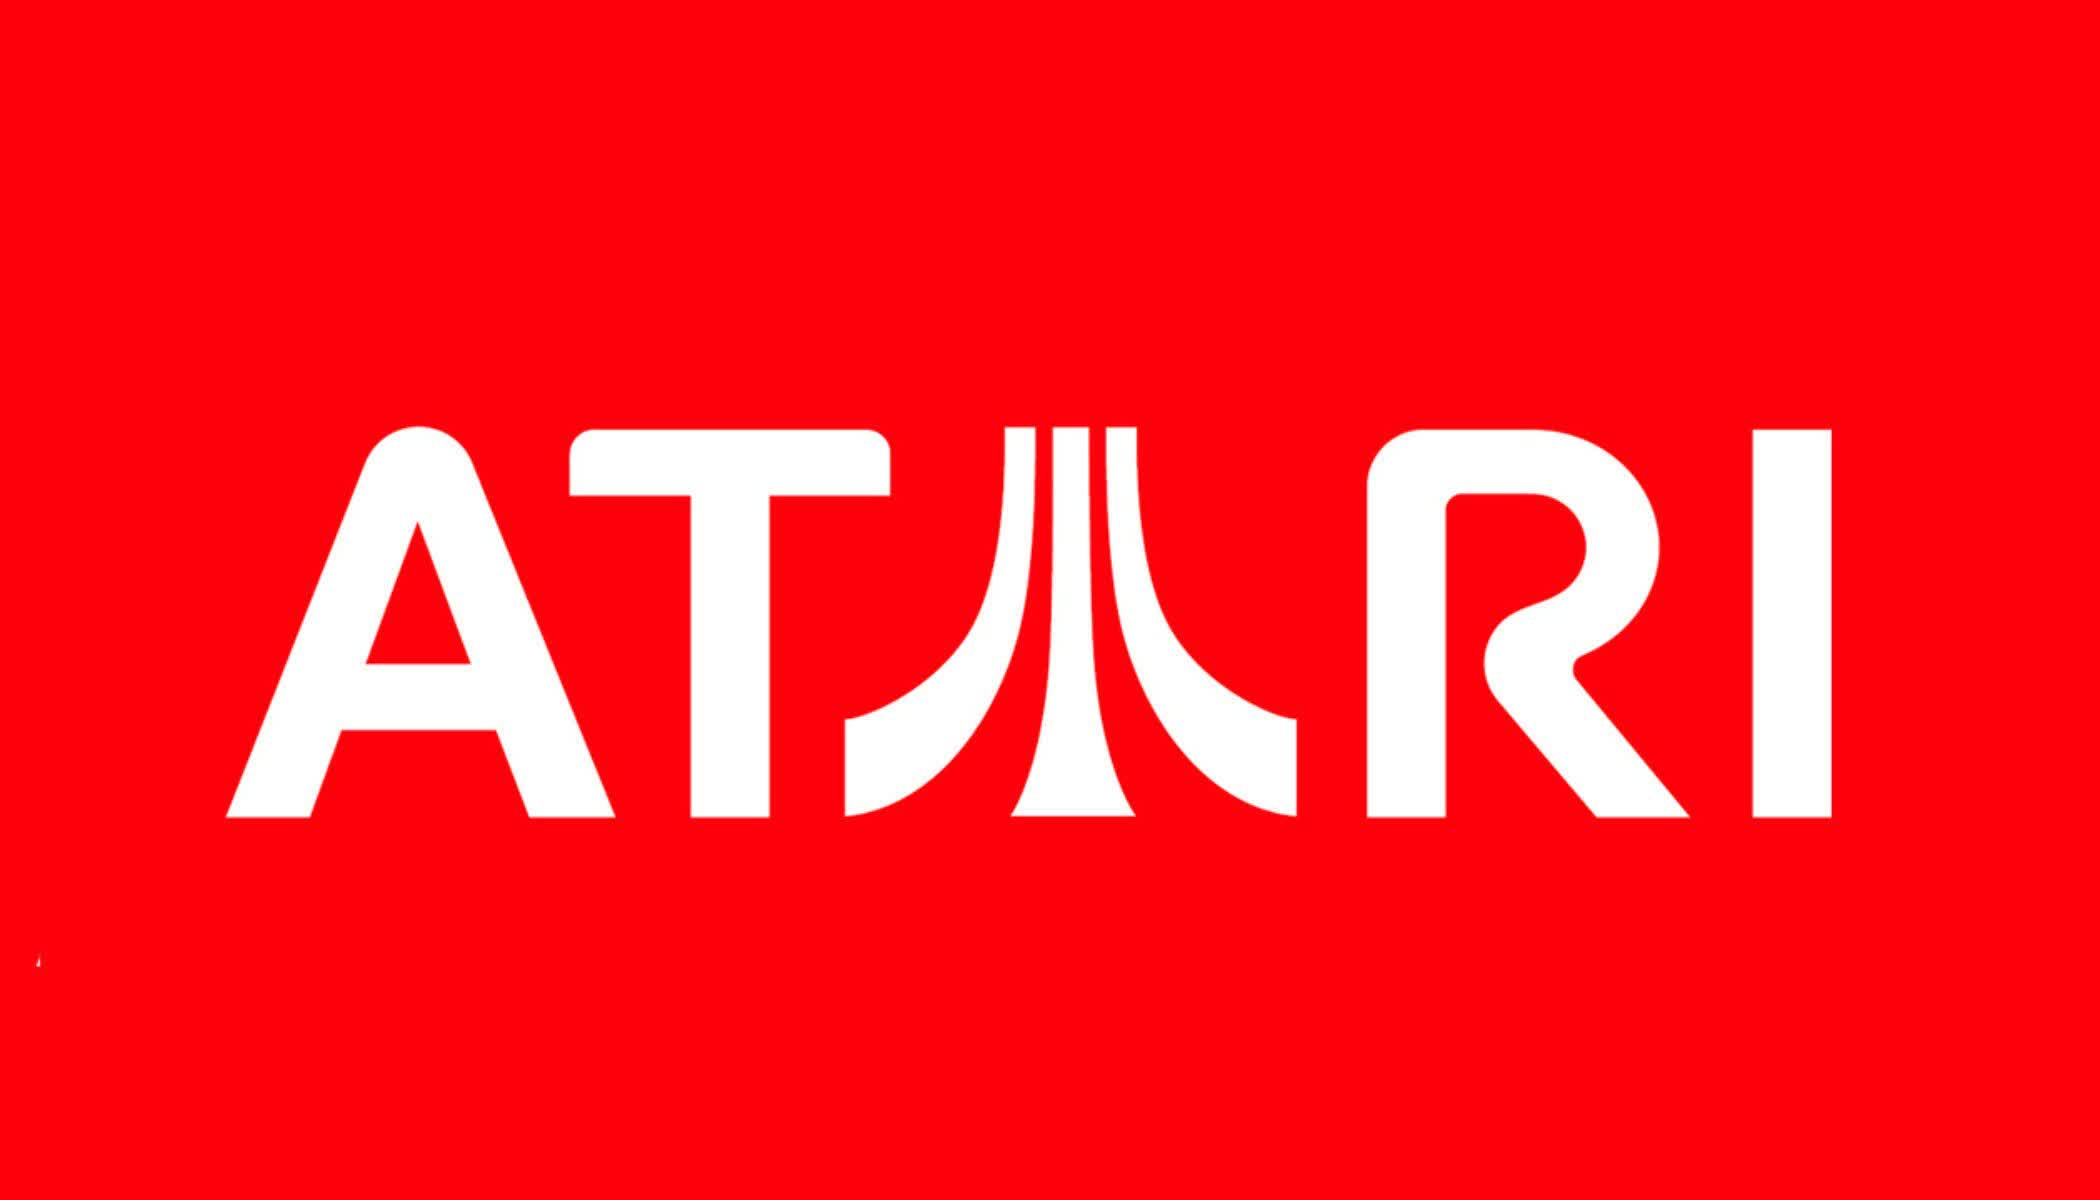 Atari pivots from free-to-play mobile titles to premium PC and console games